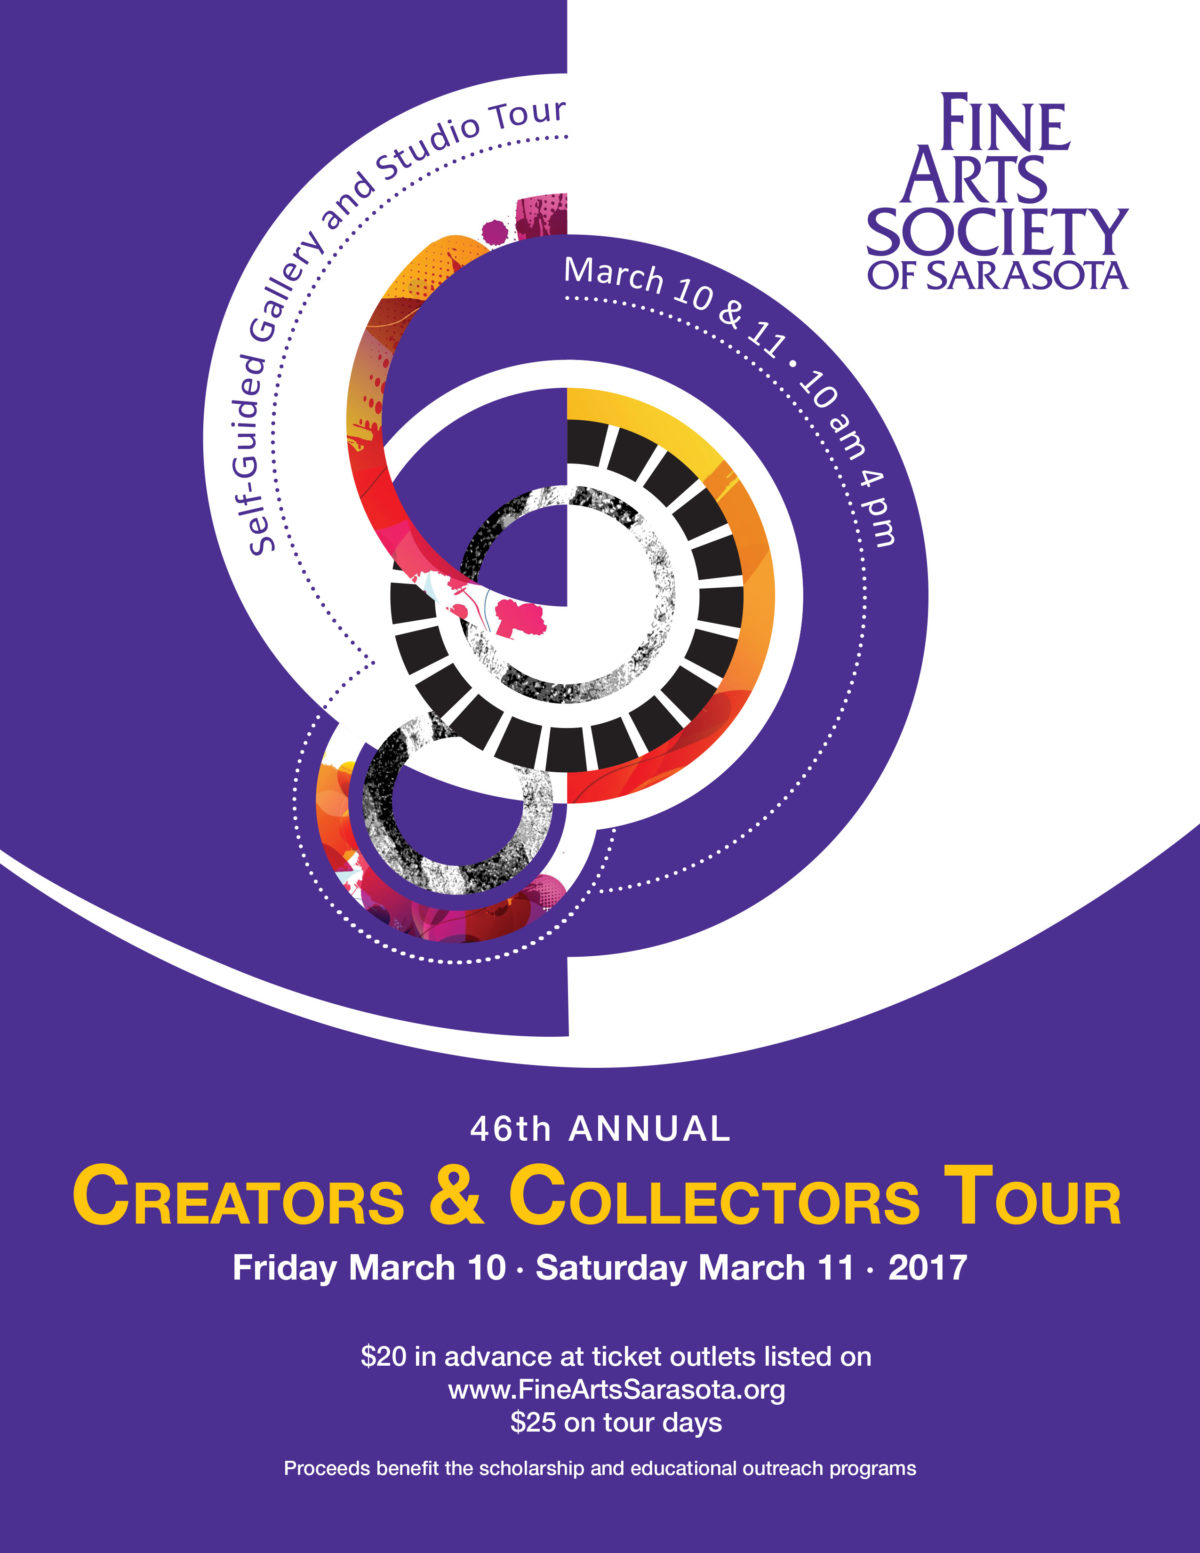 FAS 46th Annual Creators & Collectors Tour